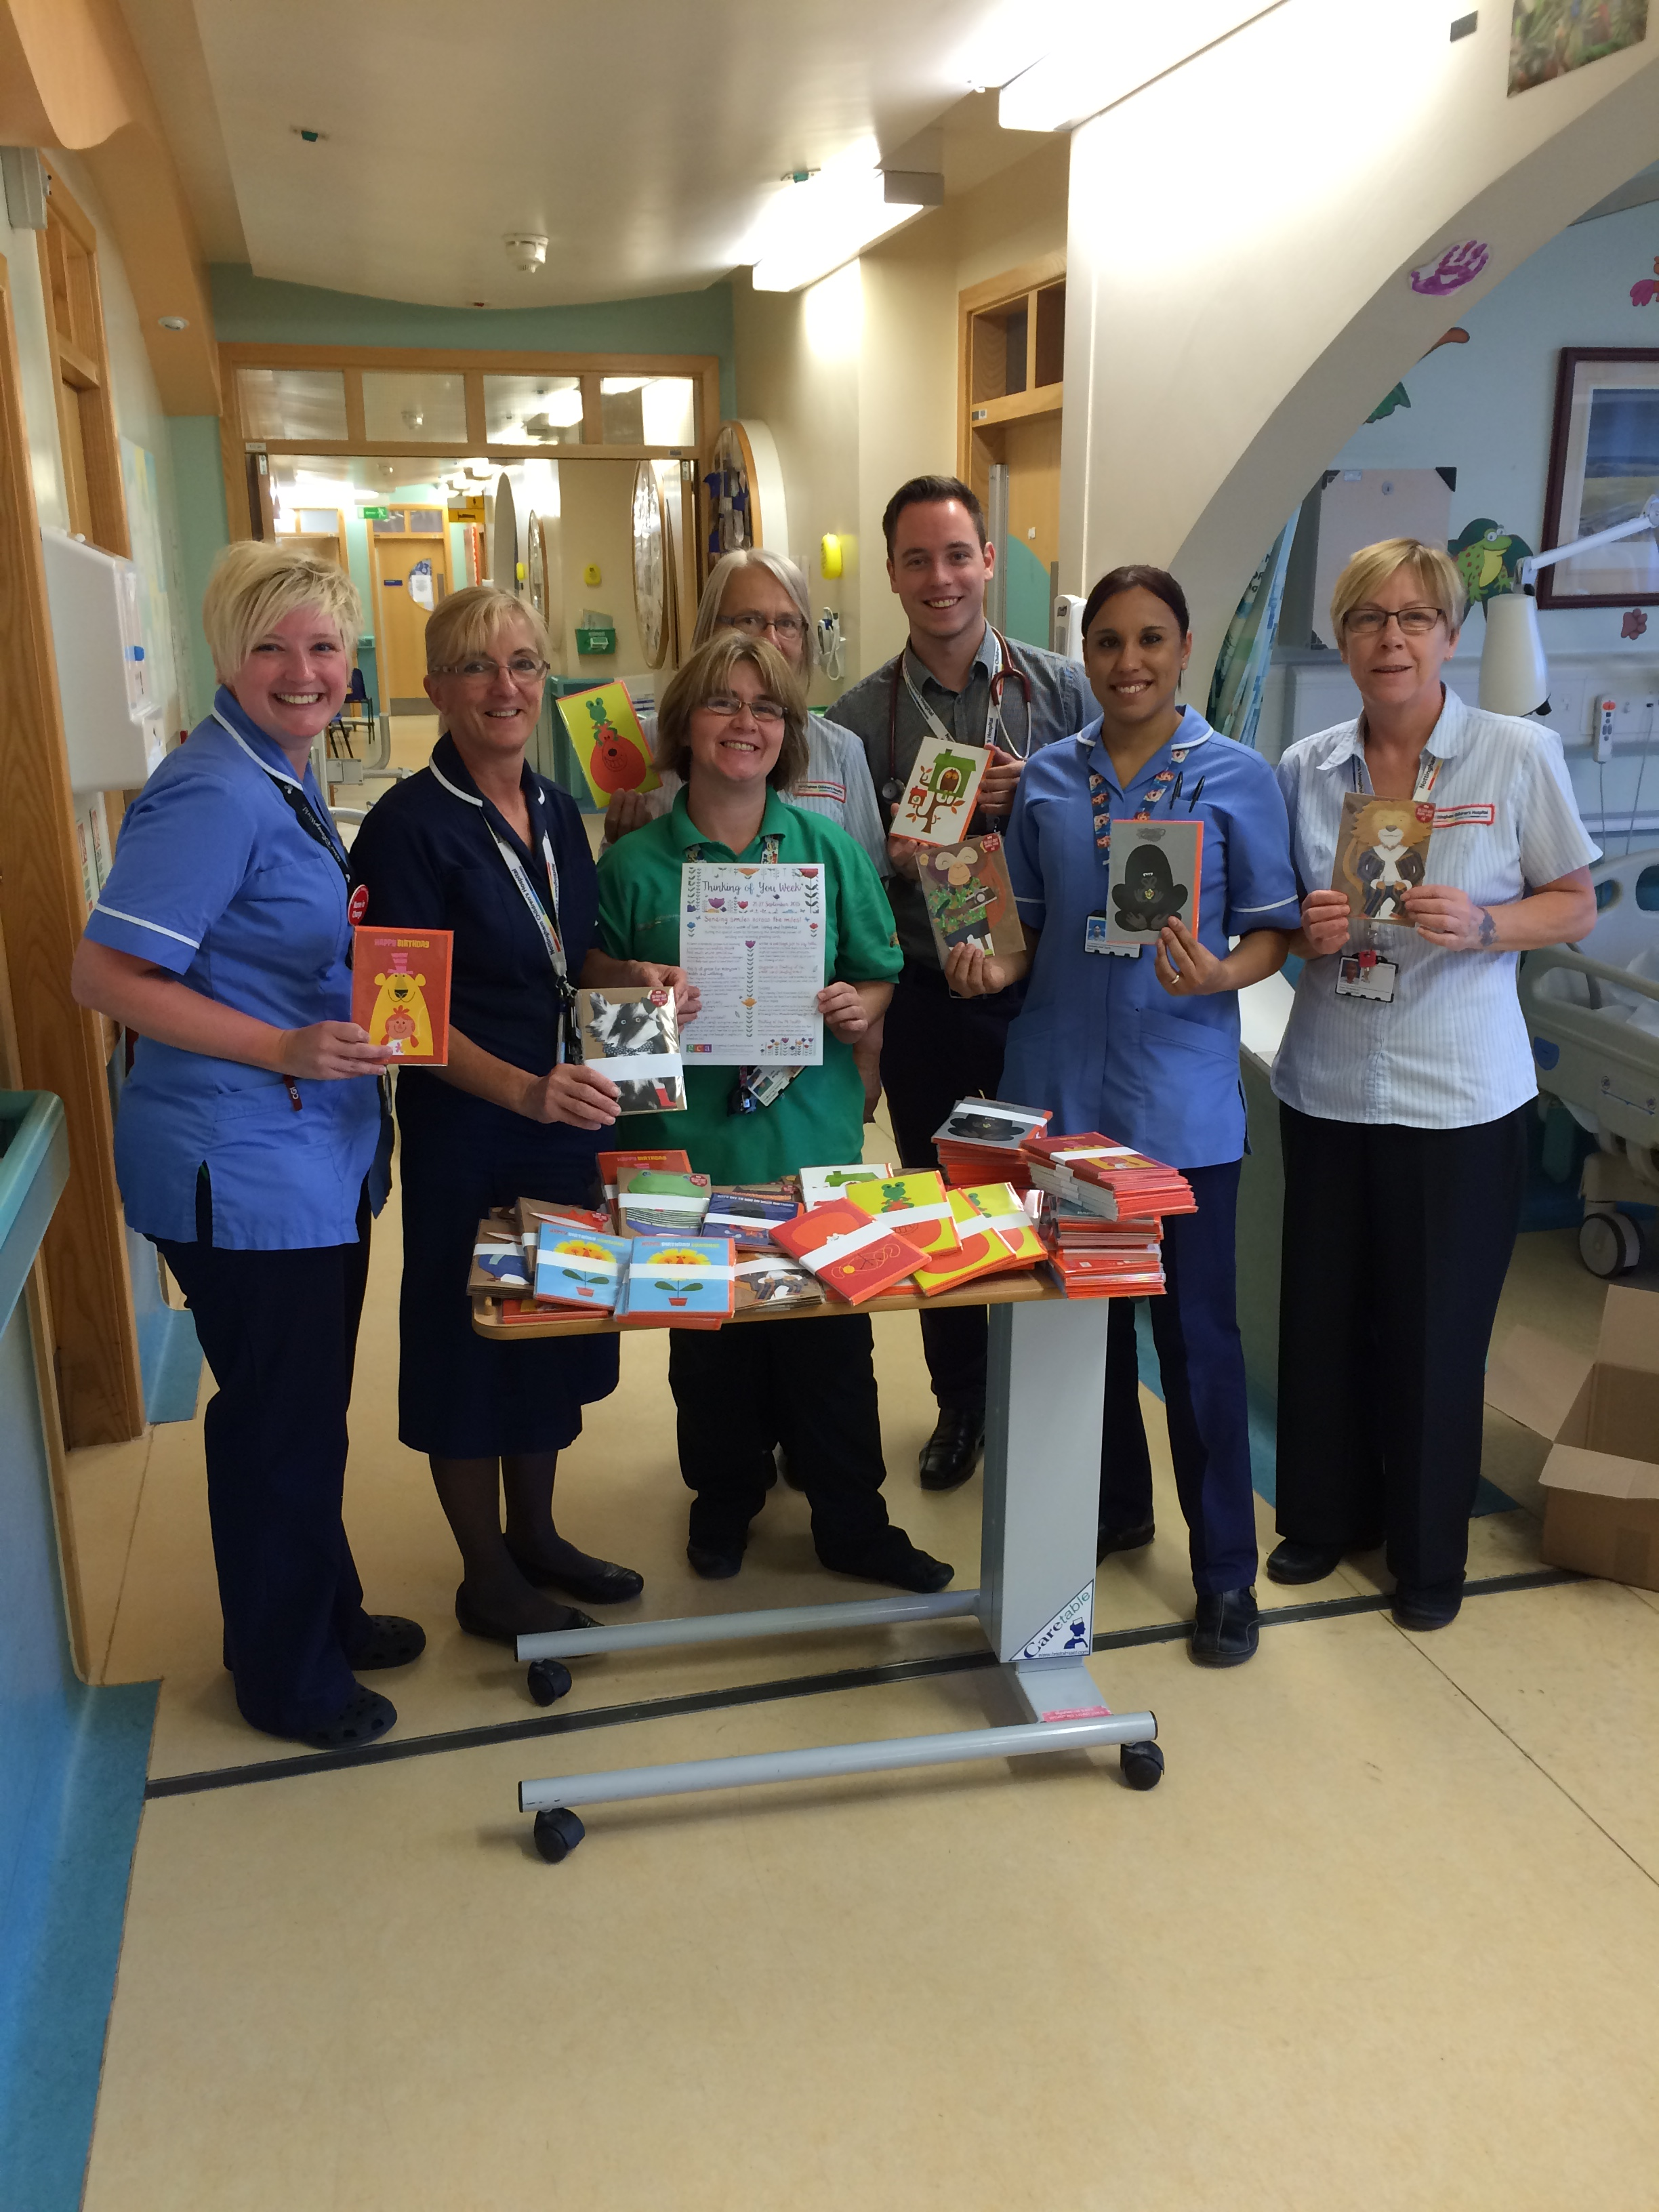 Staff on Children's ward D33 at the QMC- Nottingham